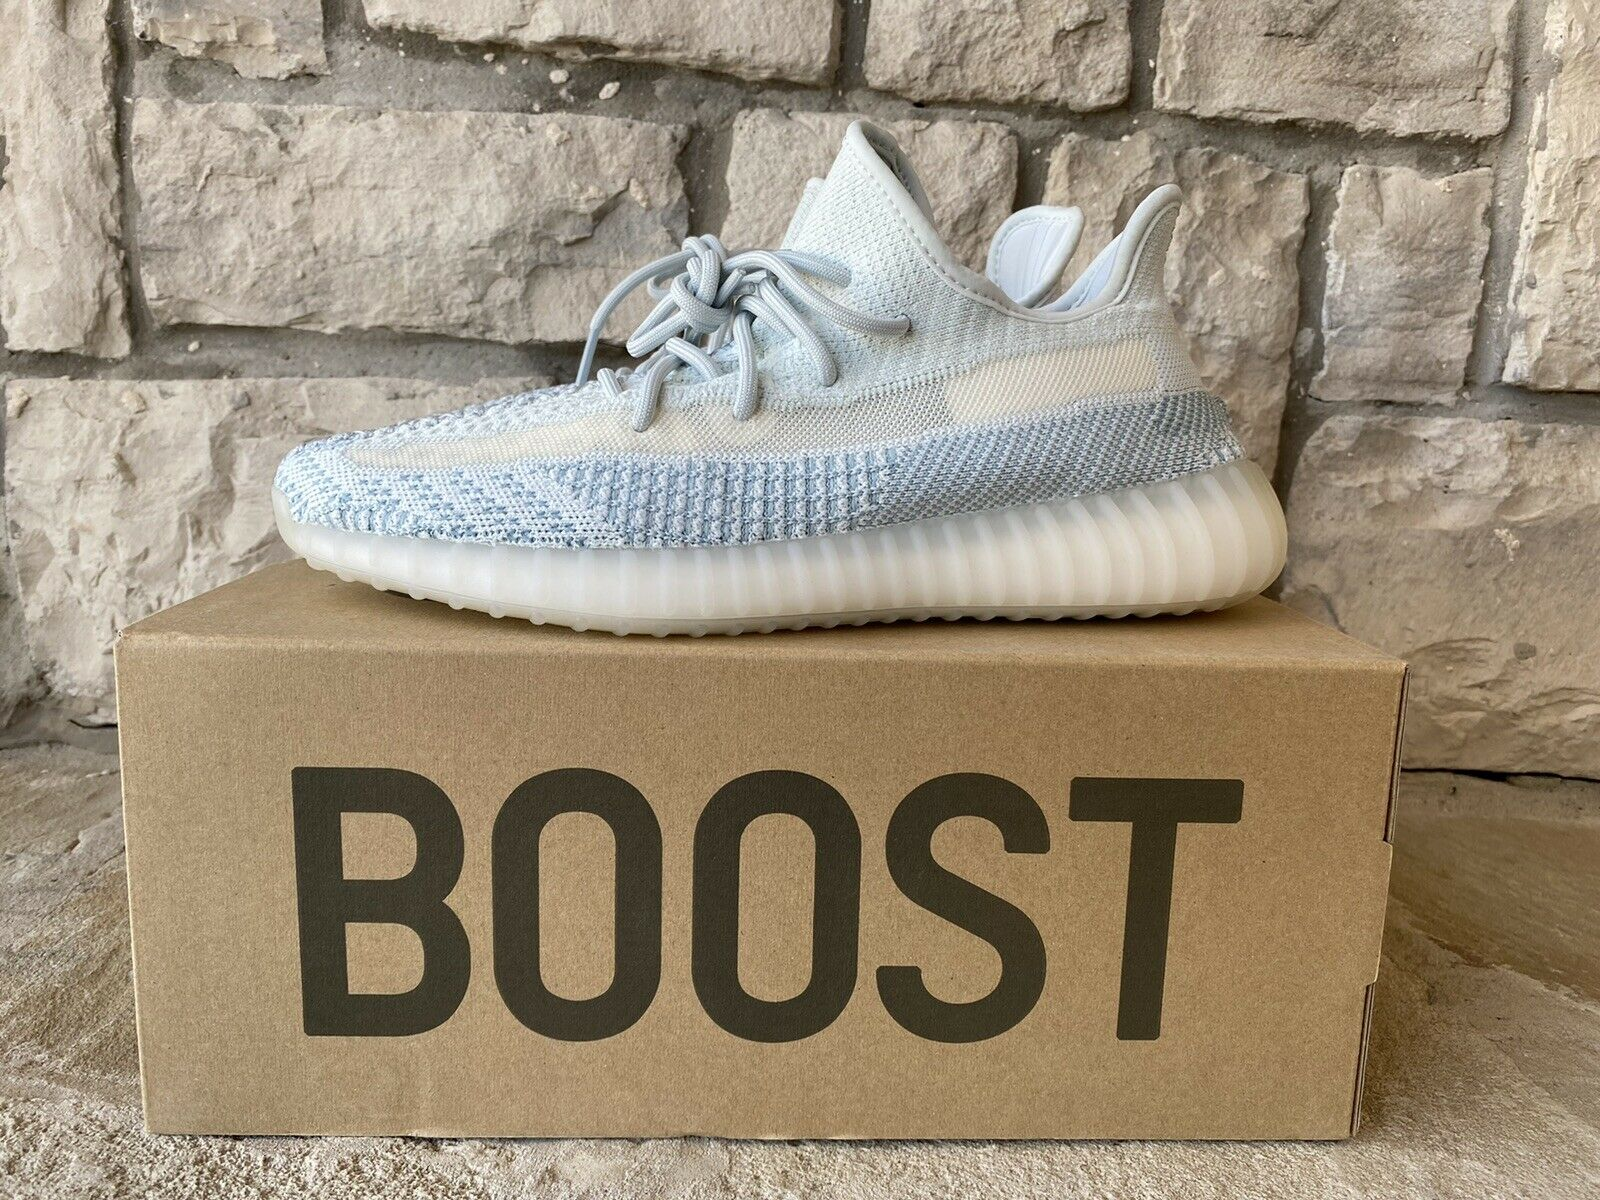 adidas Yeezy Boost 350 V2 Cloud White Infant